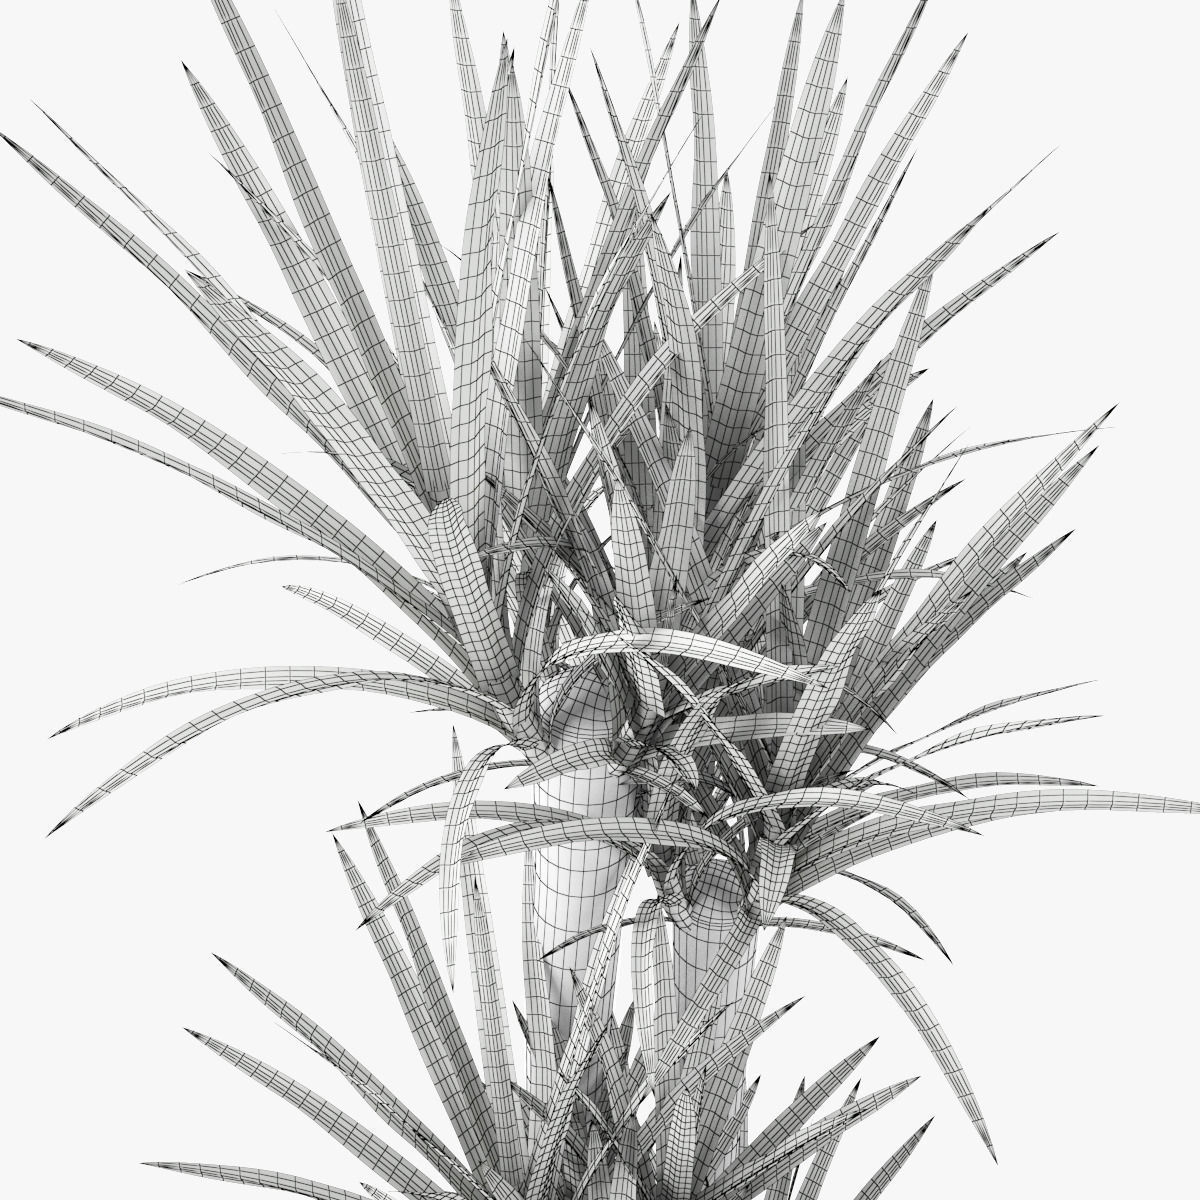 Yucca Elephantipes Yucca Elephantipes Potted Plant Palm Tree 3d Model Max